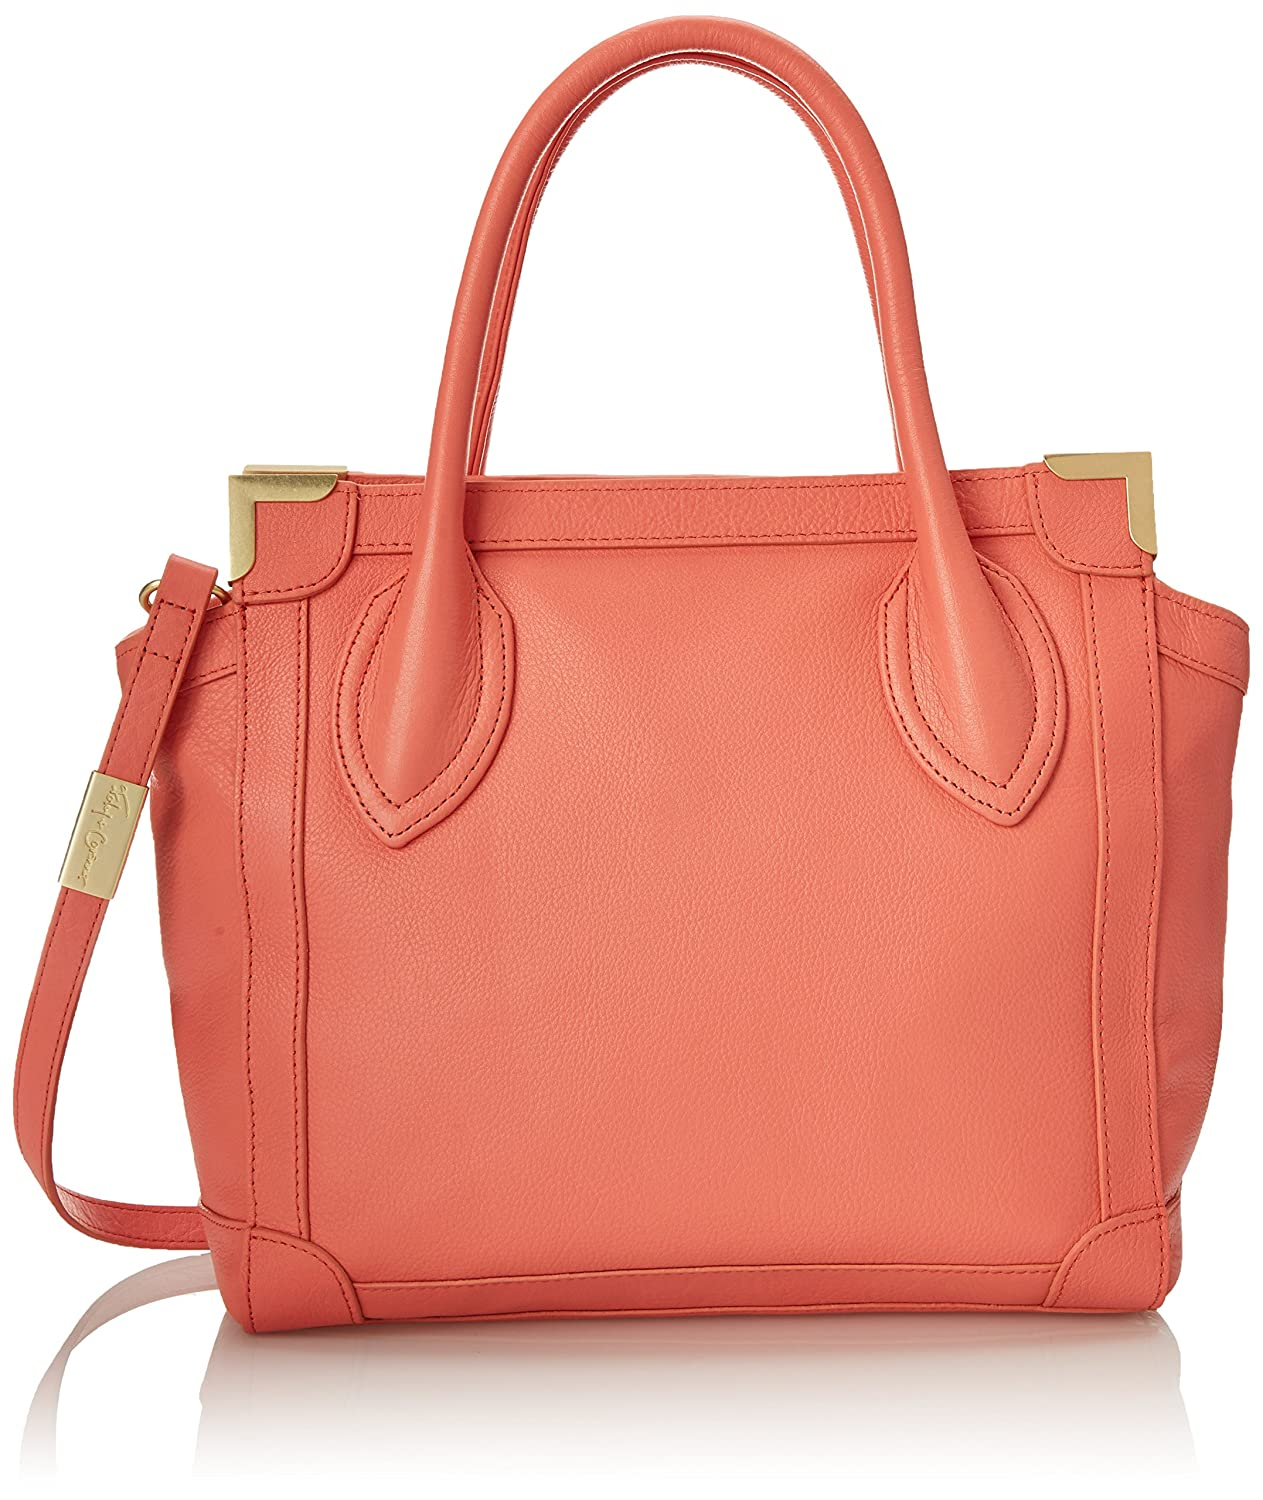 Foley + Corinna Framed Mini Shopper Top-Handle Bag